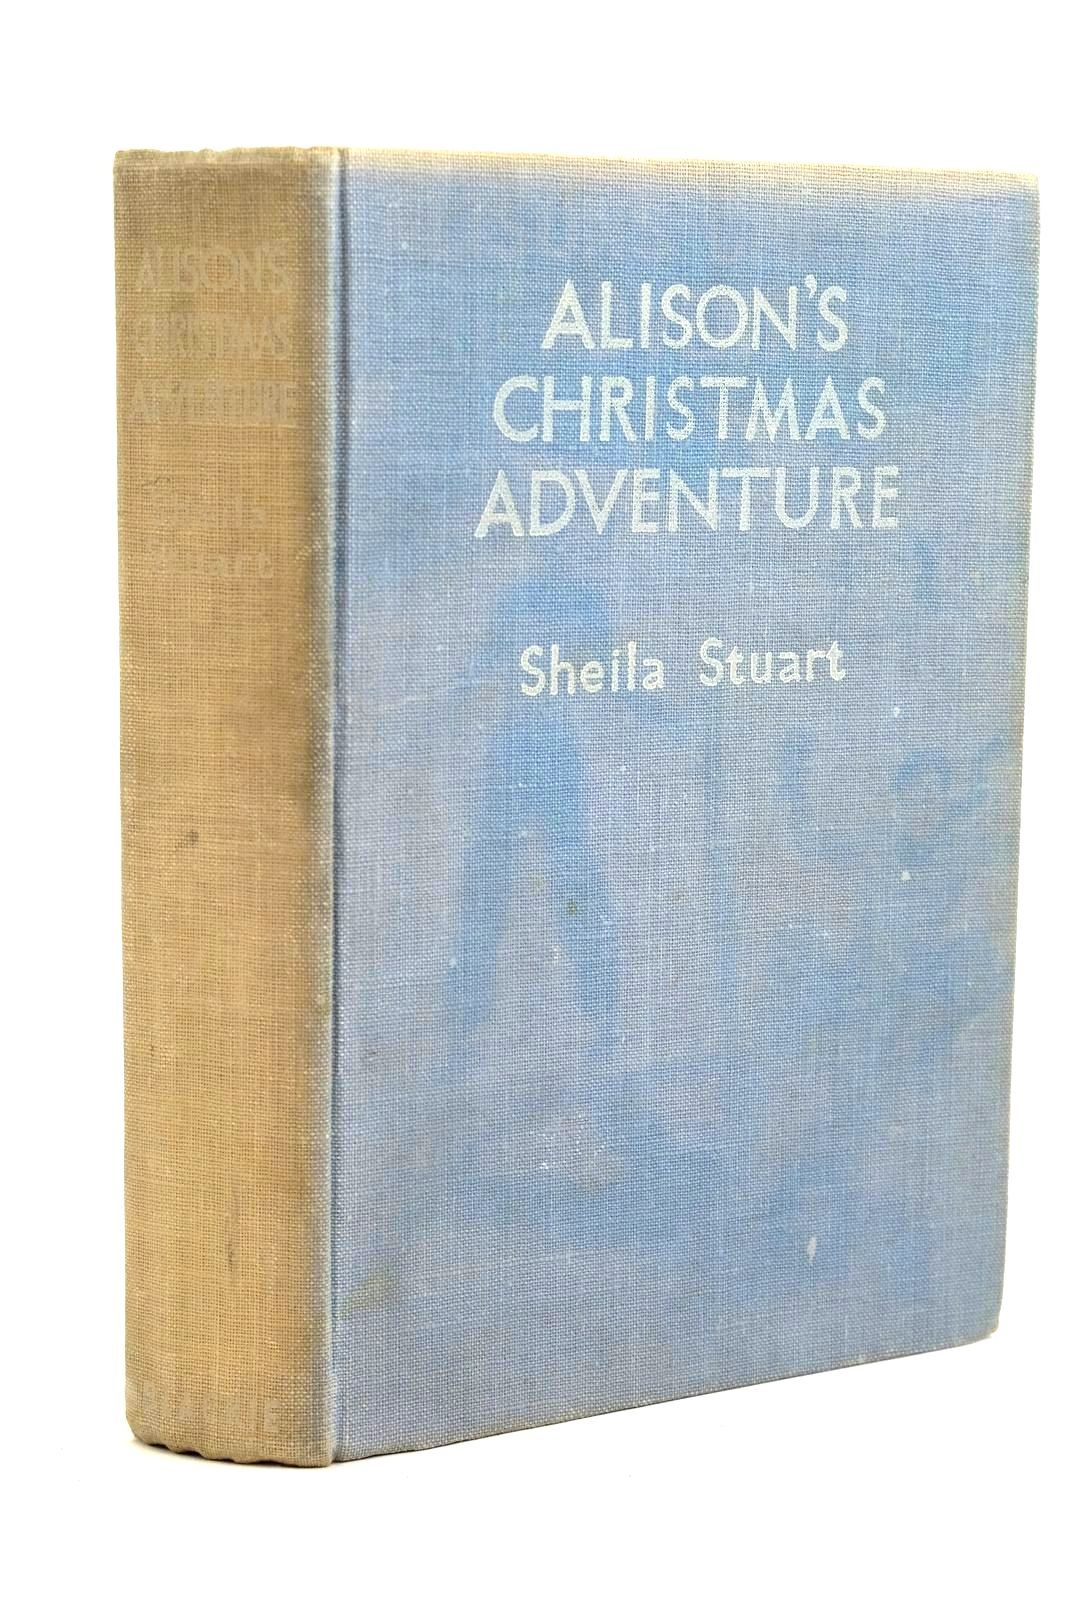 Photo of ALISON'S CHRISTMAS ADVENTURE written by Stuart, Sheila illustrated by Gervaise,  published by Blackie & Son Ltd. (STOCK CODE: 1320710)  for sale by Stella & Rose's Books